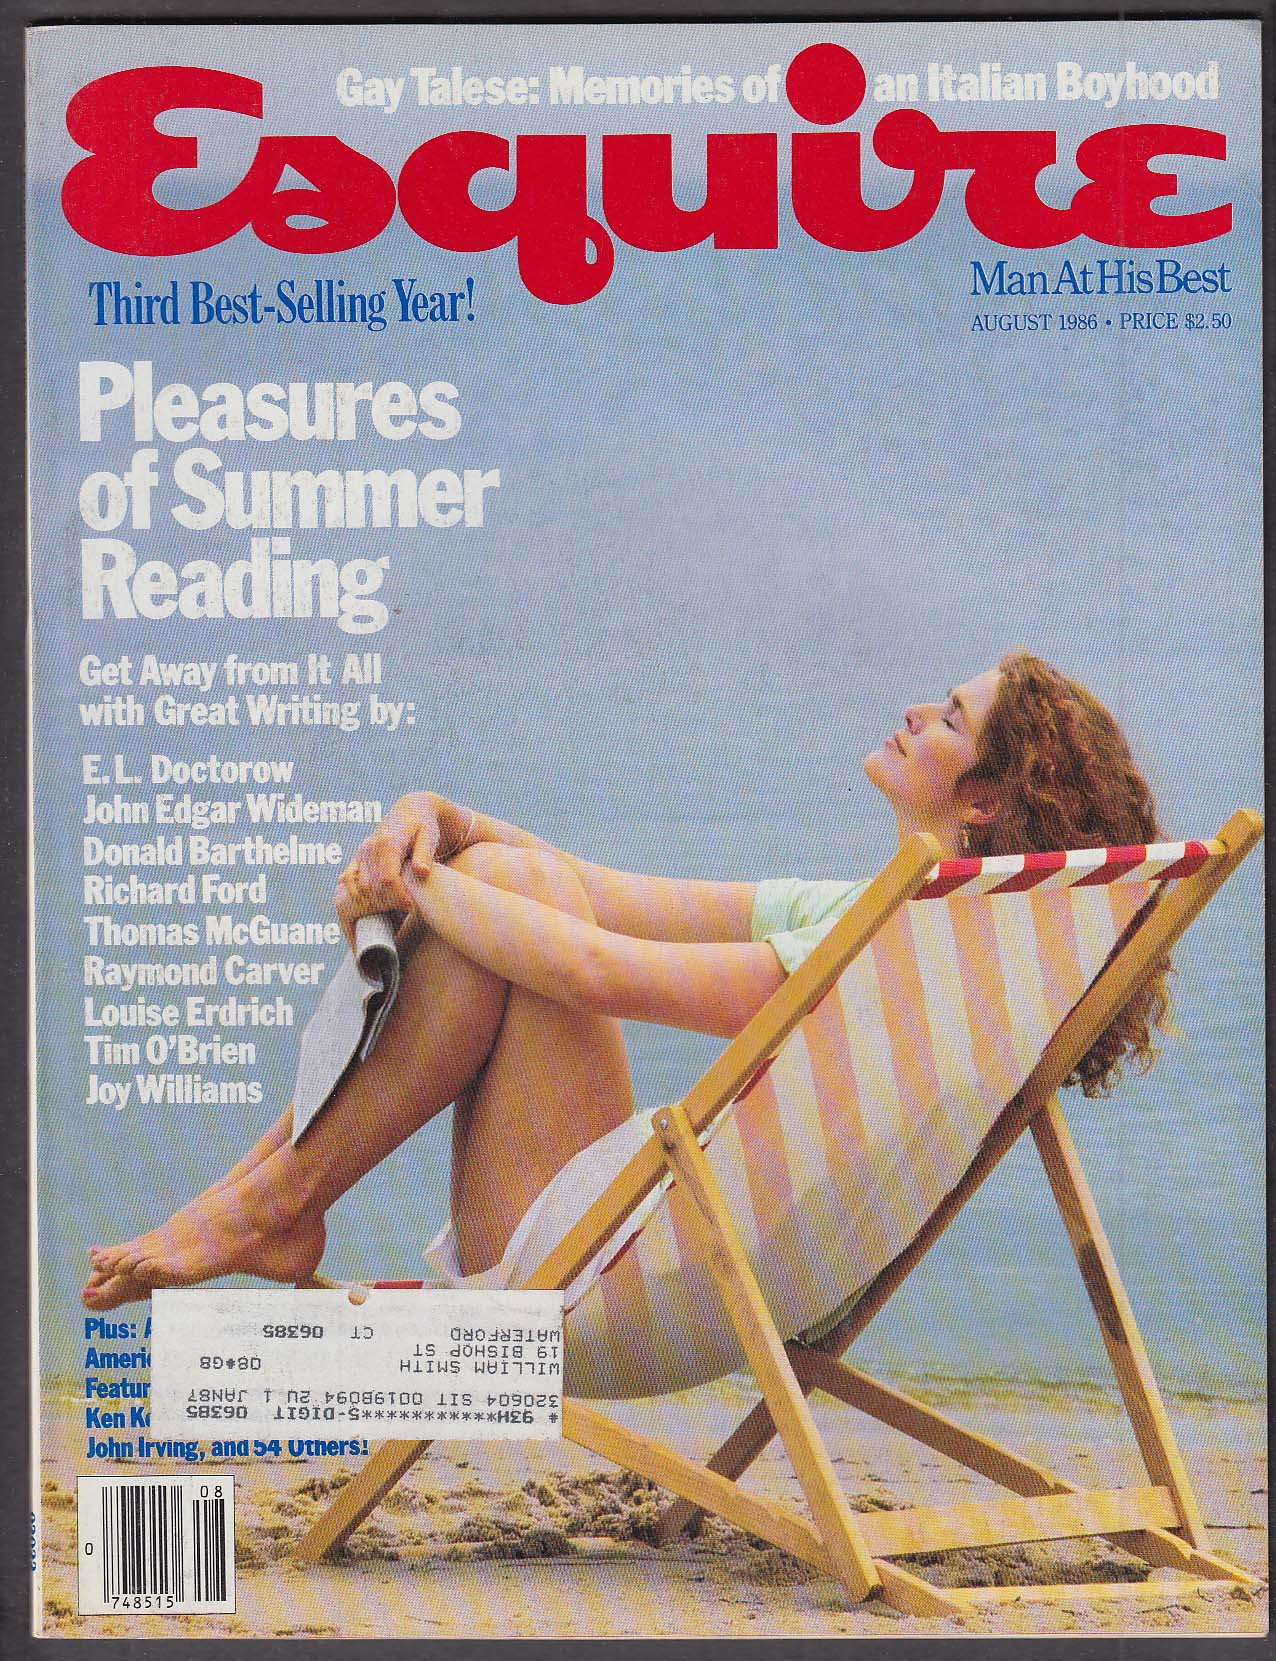 ESQUIRE E L Doctorow Gay Talese Raymond Carver ++ 8 1986